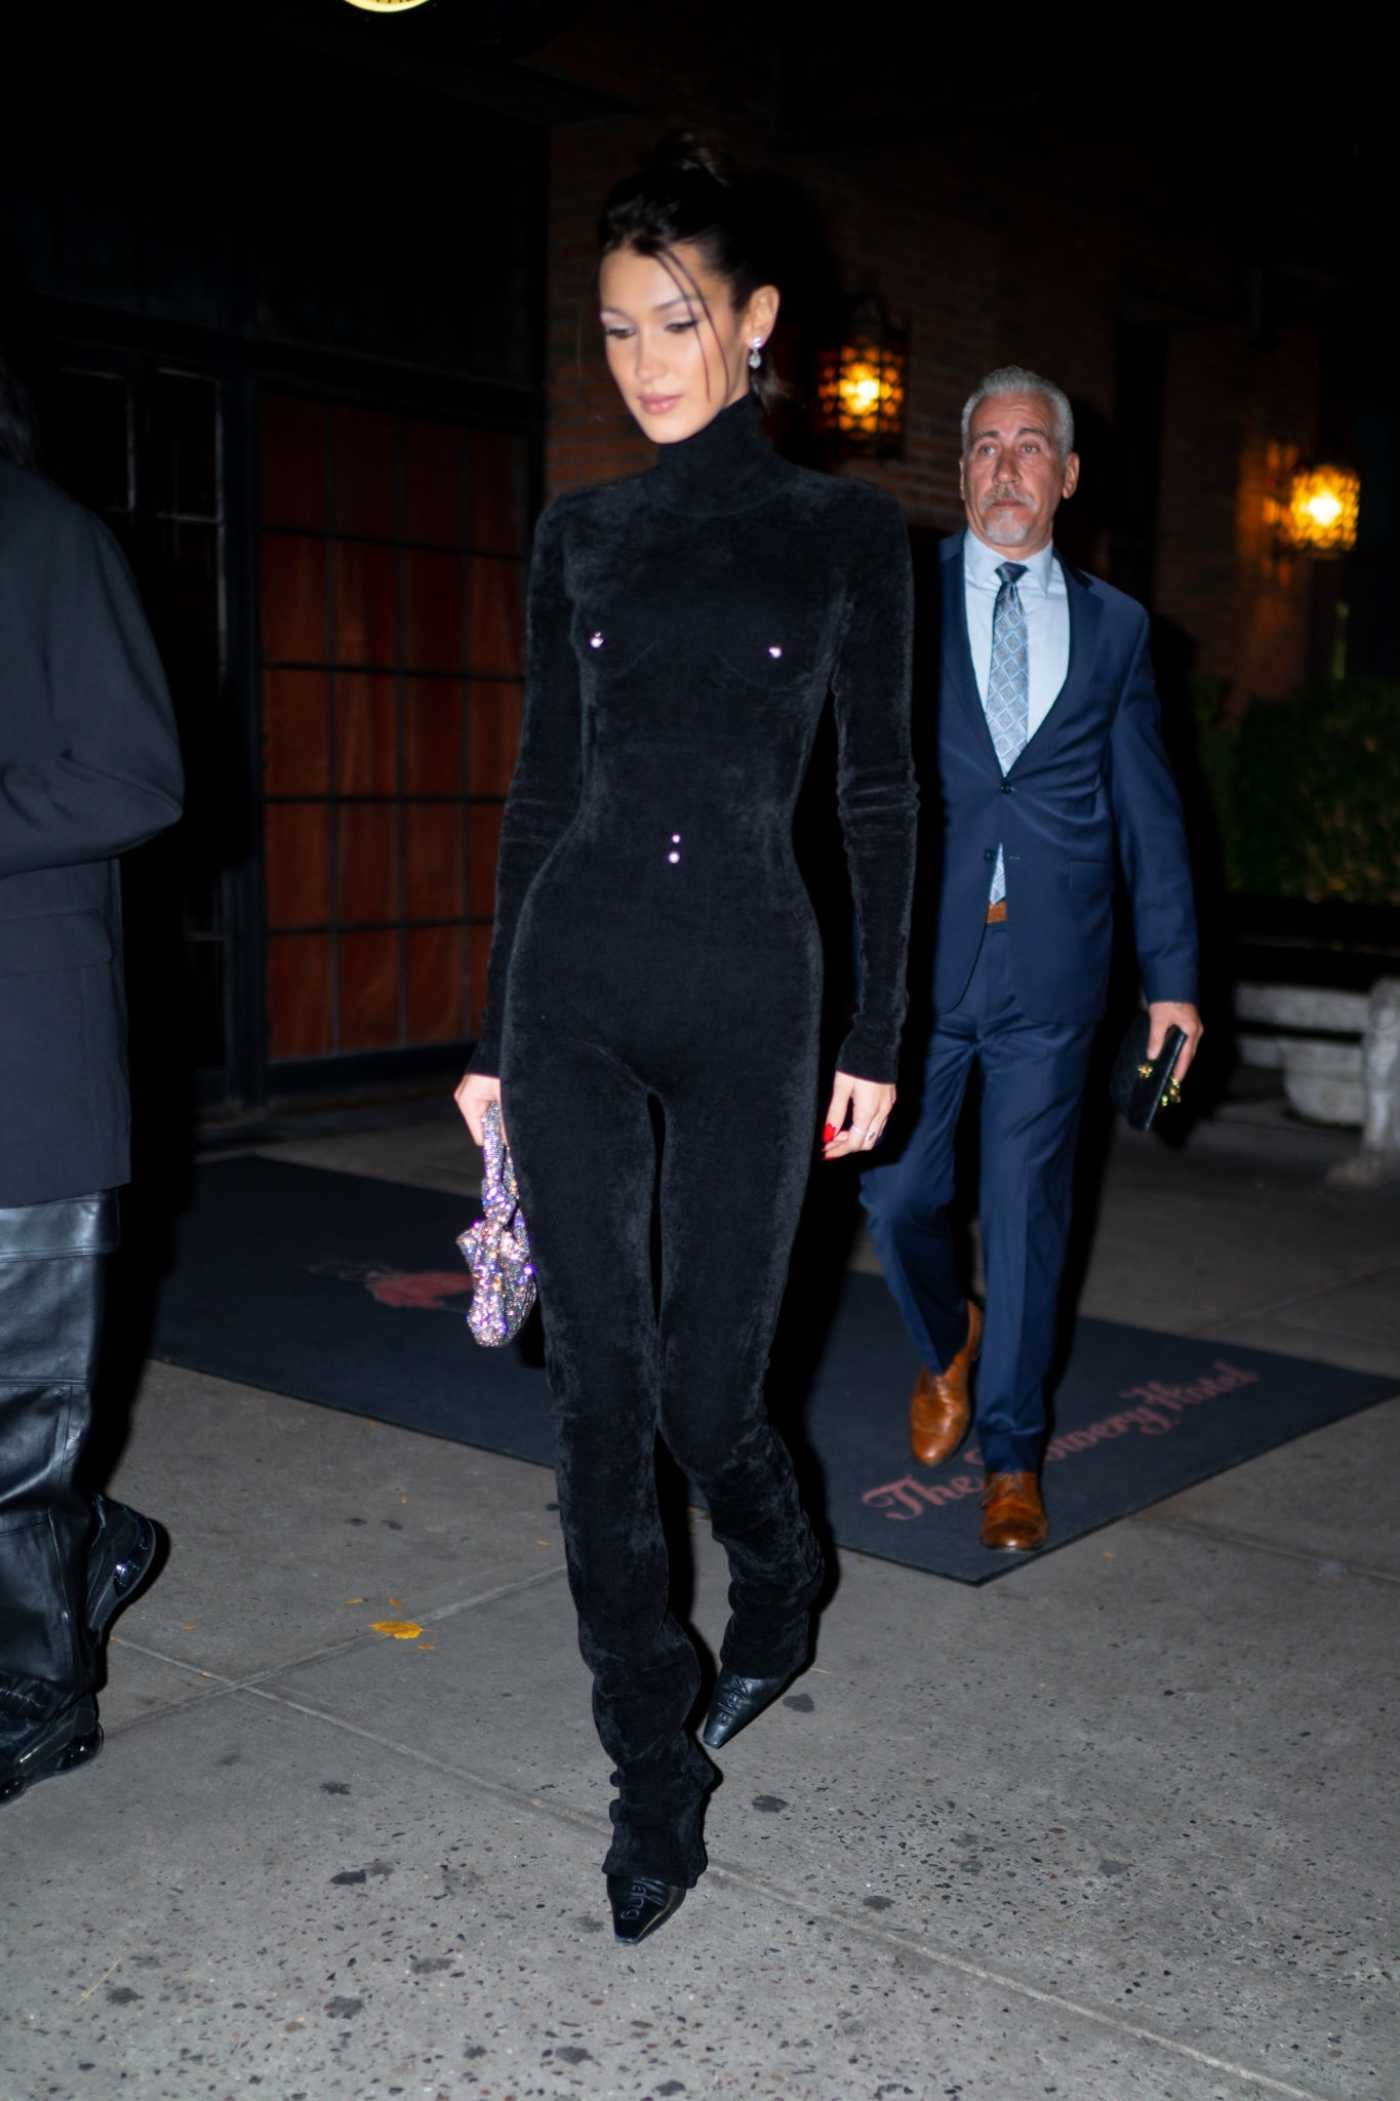 Bella Hadid in a Black Suit Leaves Cipriani's in New York City 11/04/2019